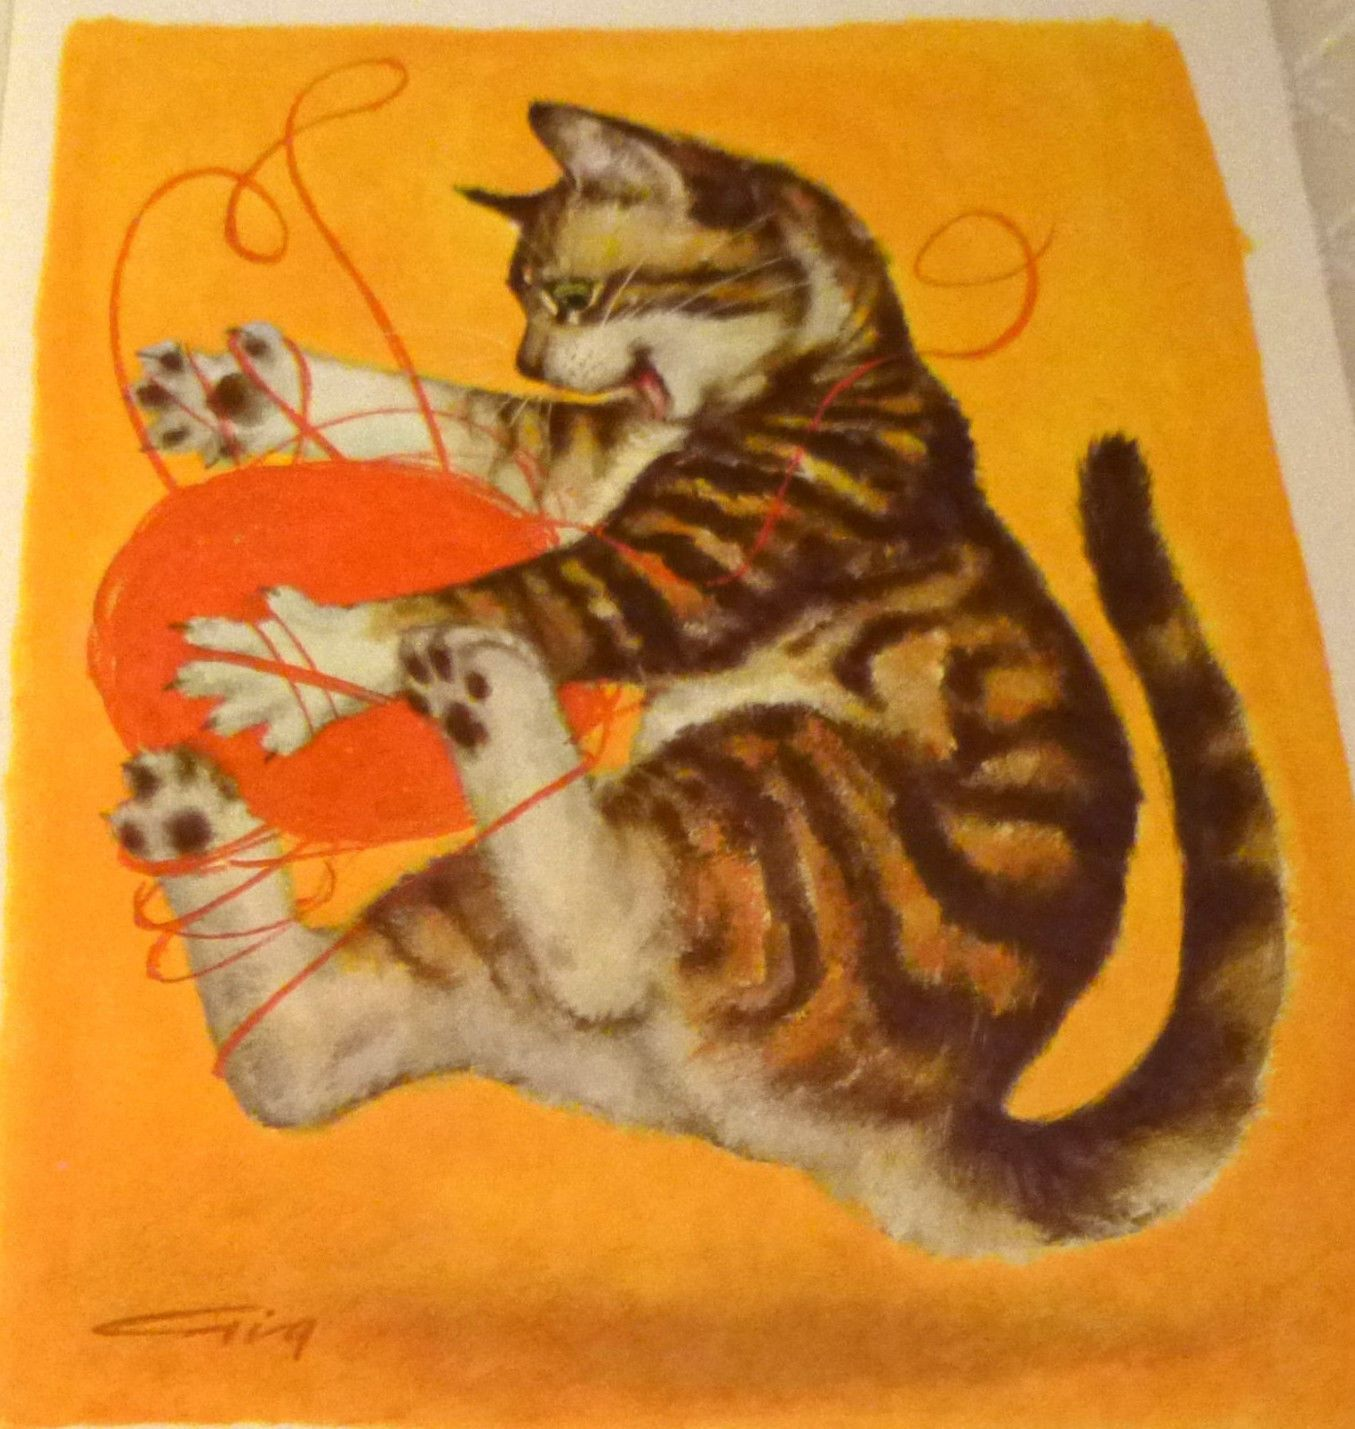 Vintage Striped Tabby Cat Fireball Paper Print By Gig 5x7 Image Orange Tabby Cat Cat Expressions Cats